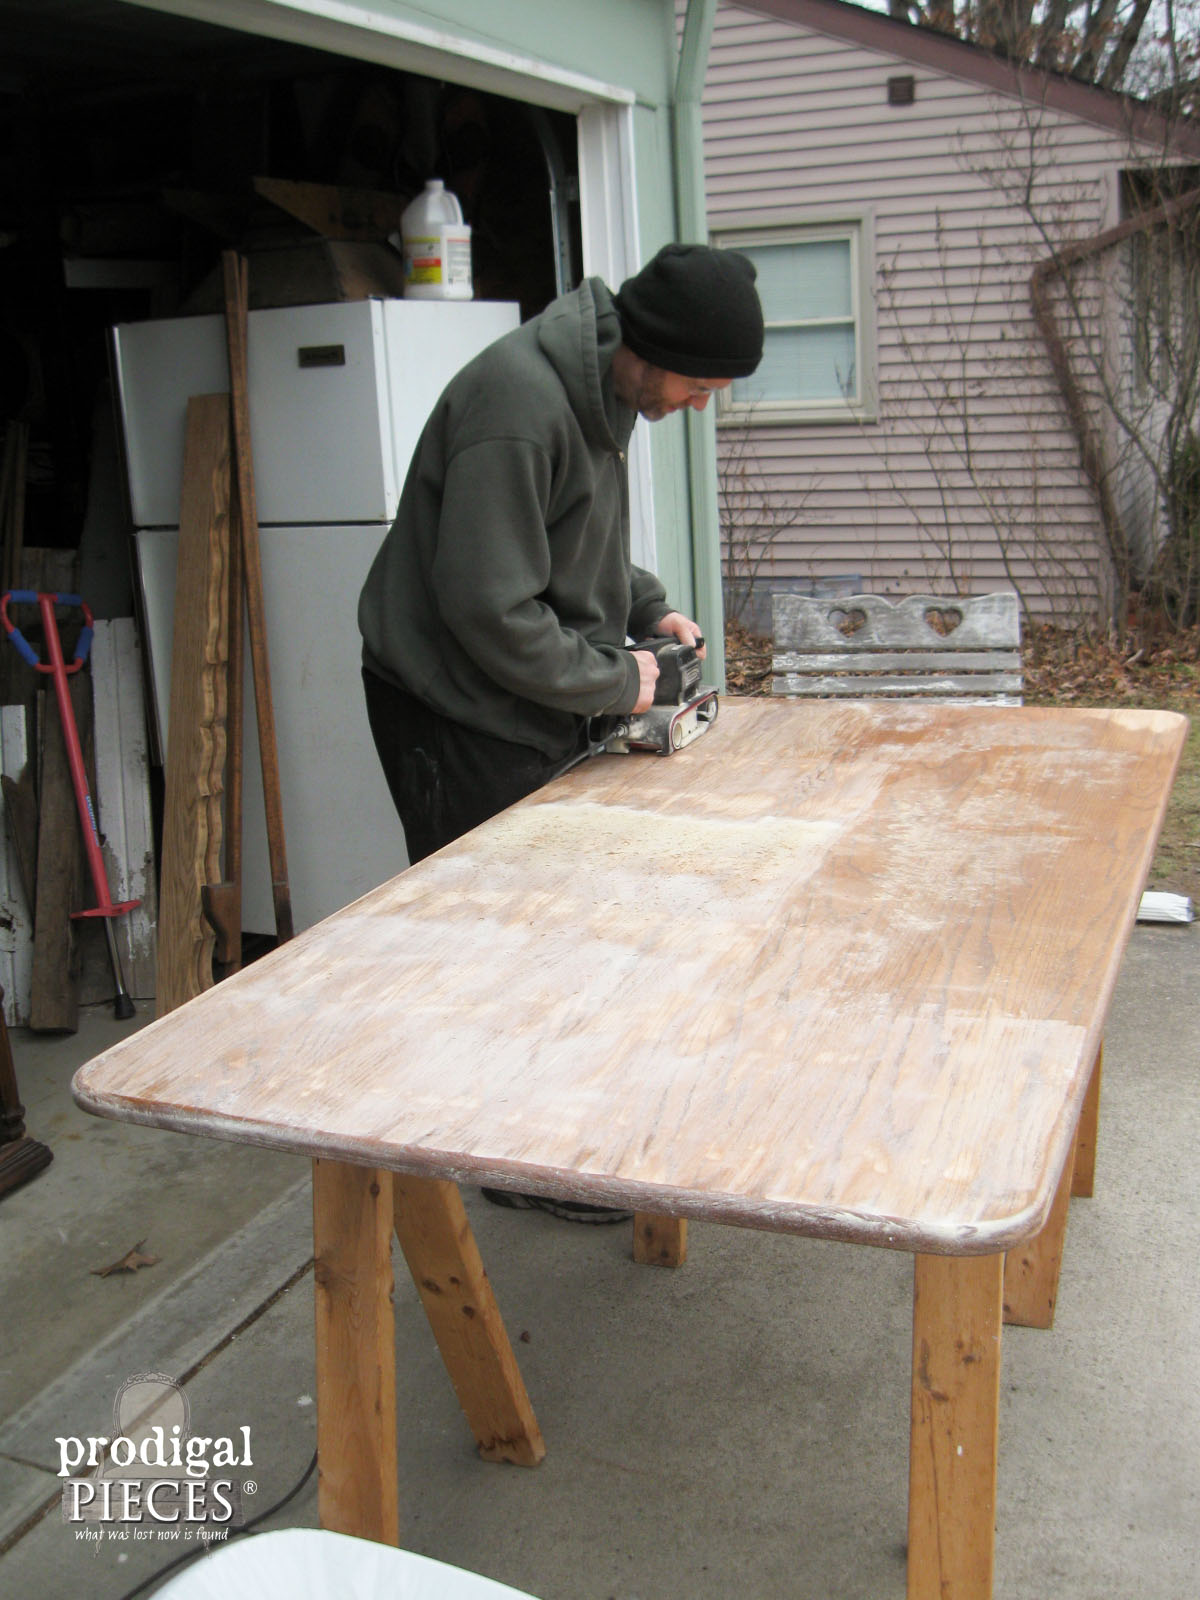 Sanding Farmhouse Table Top | Prodigal Pieces | www.prodigalpieces.com